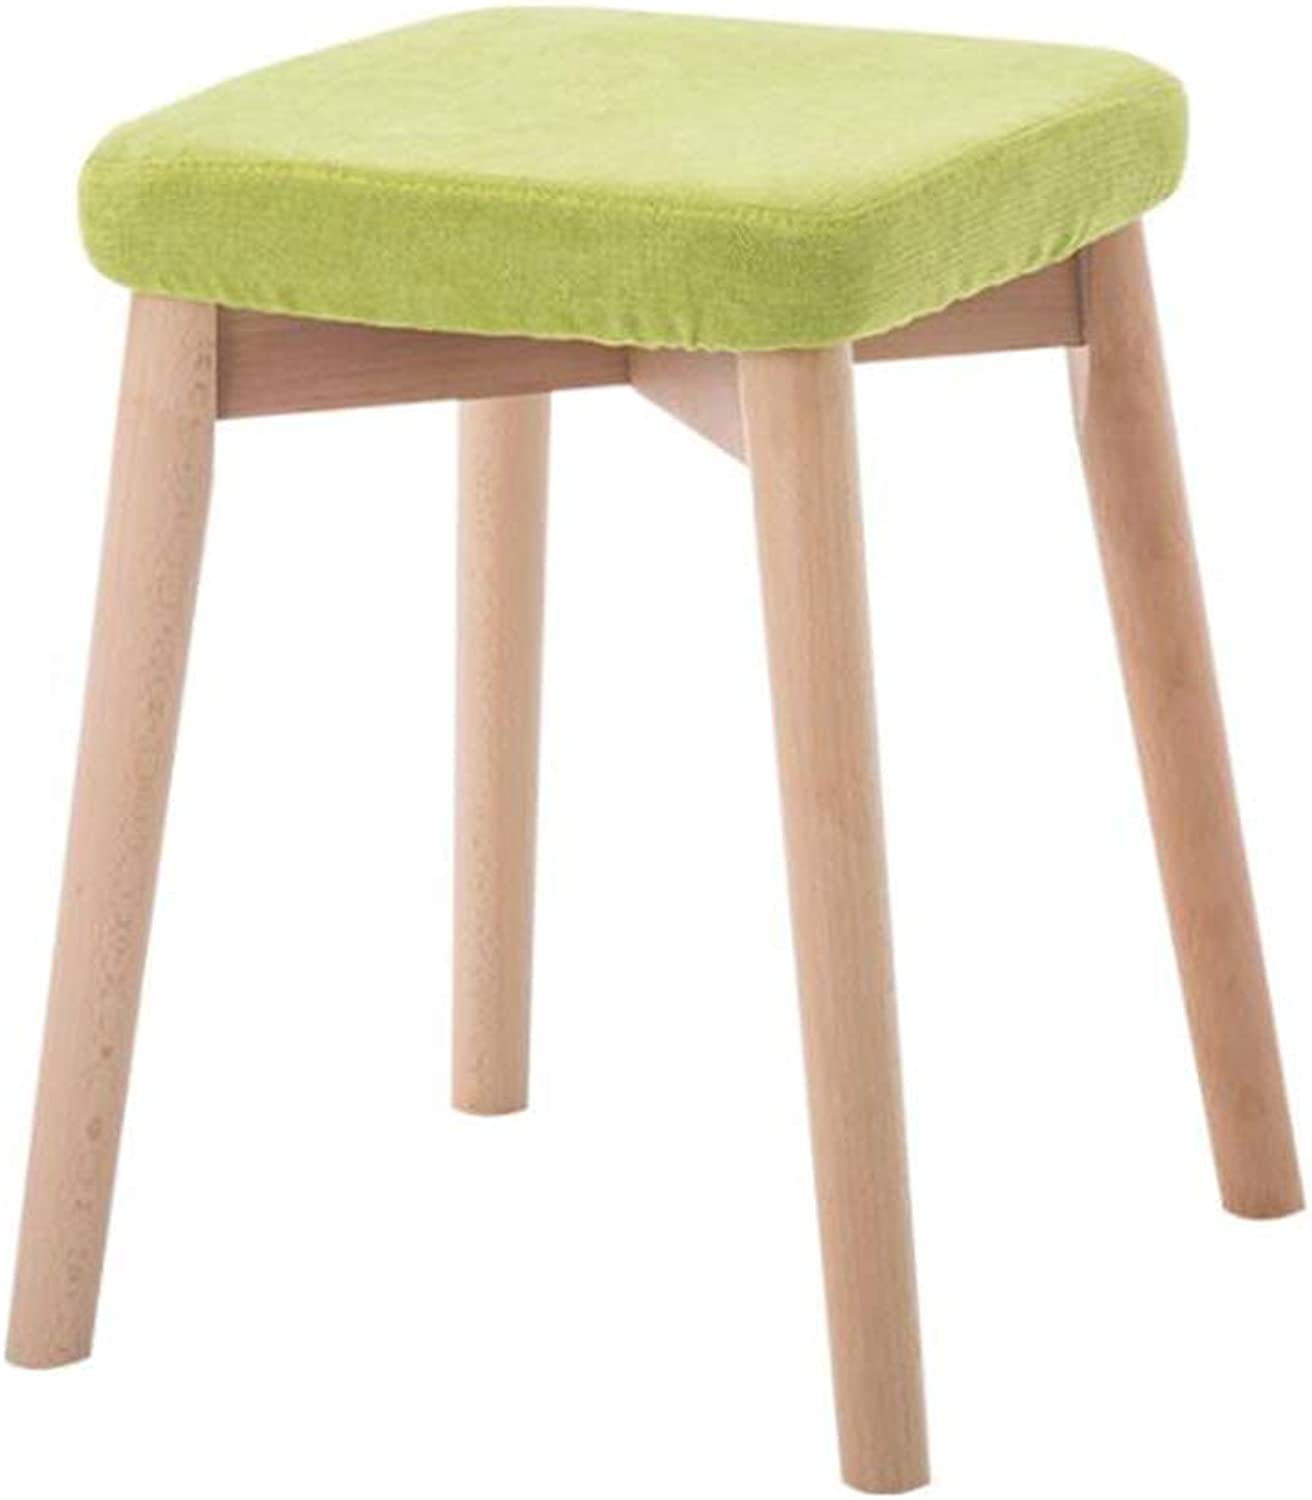 Wooden Dining Stool Modern Makeup Chair Home Dining Stool Adult Fabric Soft Surface Stool, 32  32  45cm